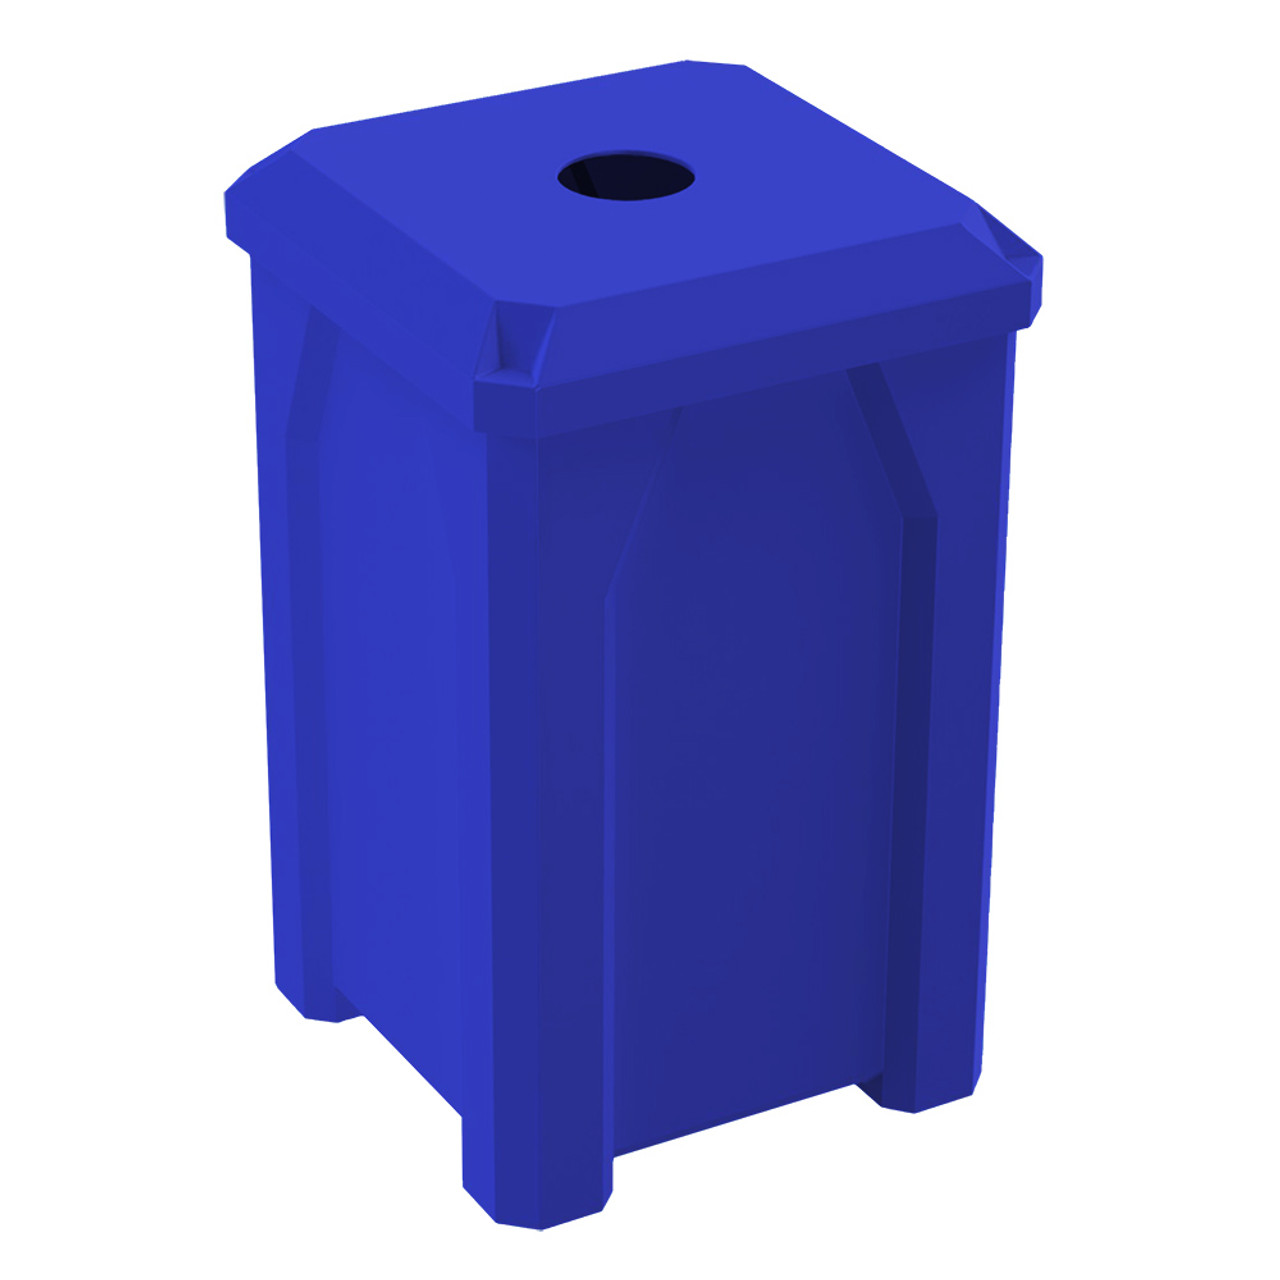 32 Gallon Kolor Can Indoor Outdoor Square Recycle Bin S7802A BLUE